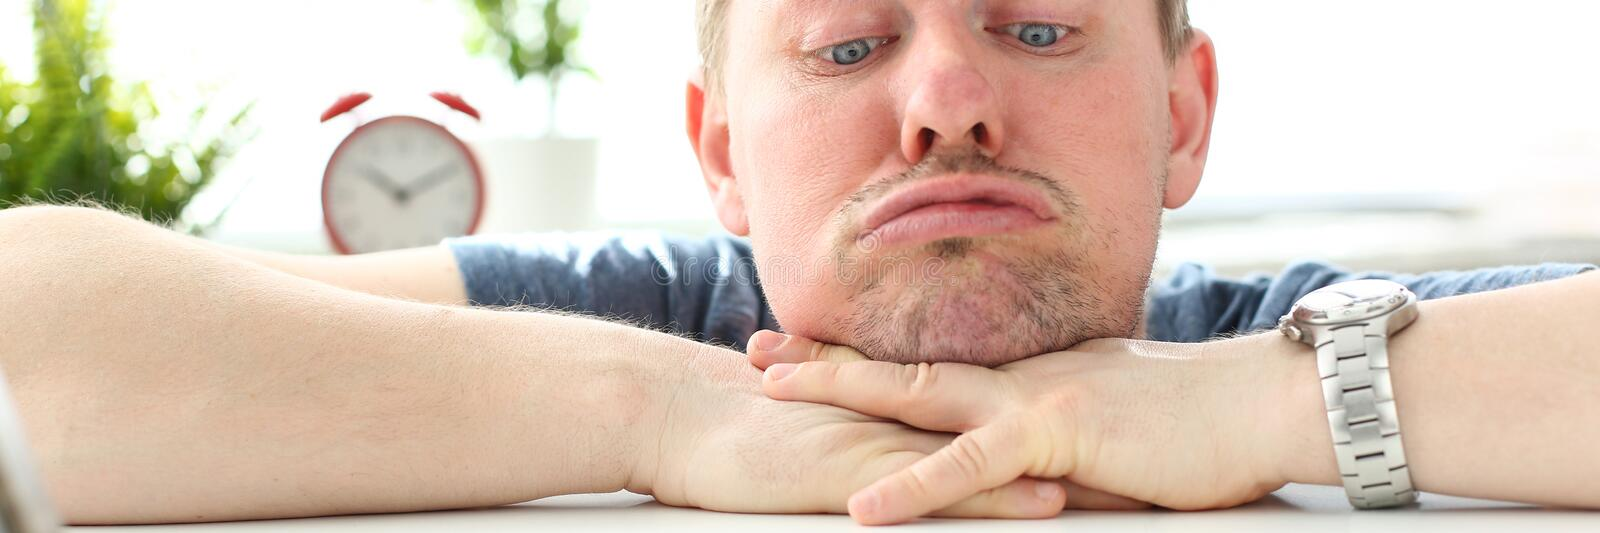 Man with funny facial expression staring at cellphone stock image